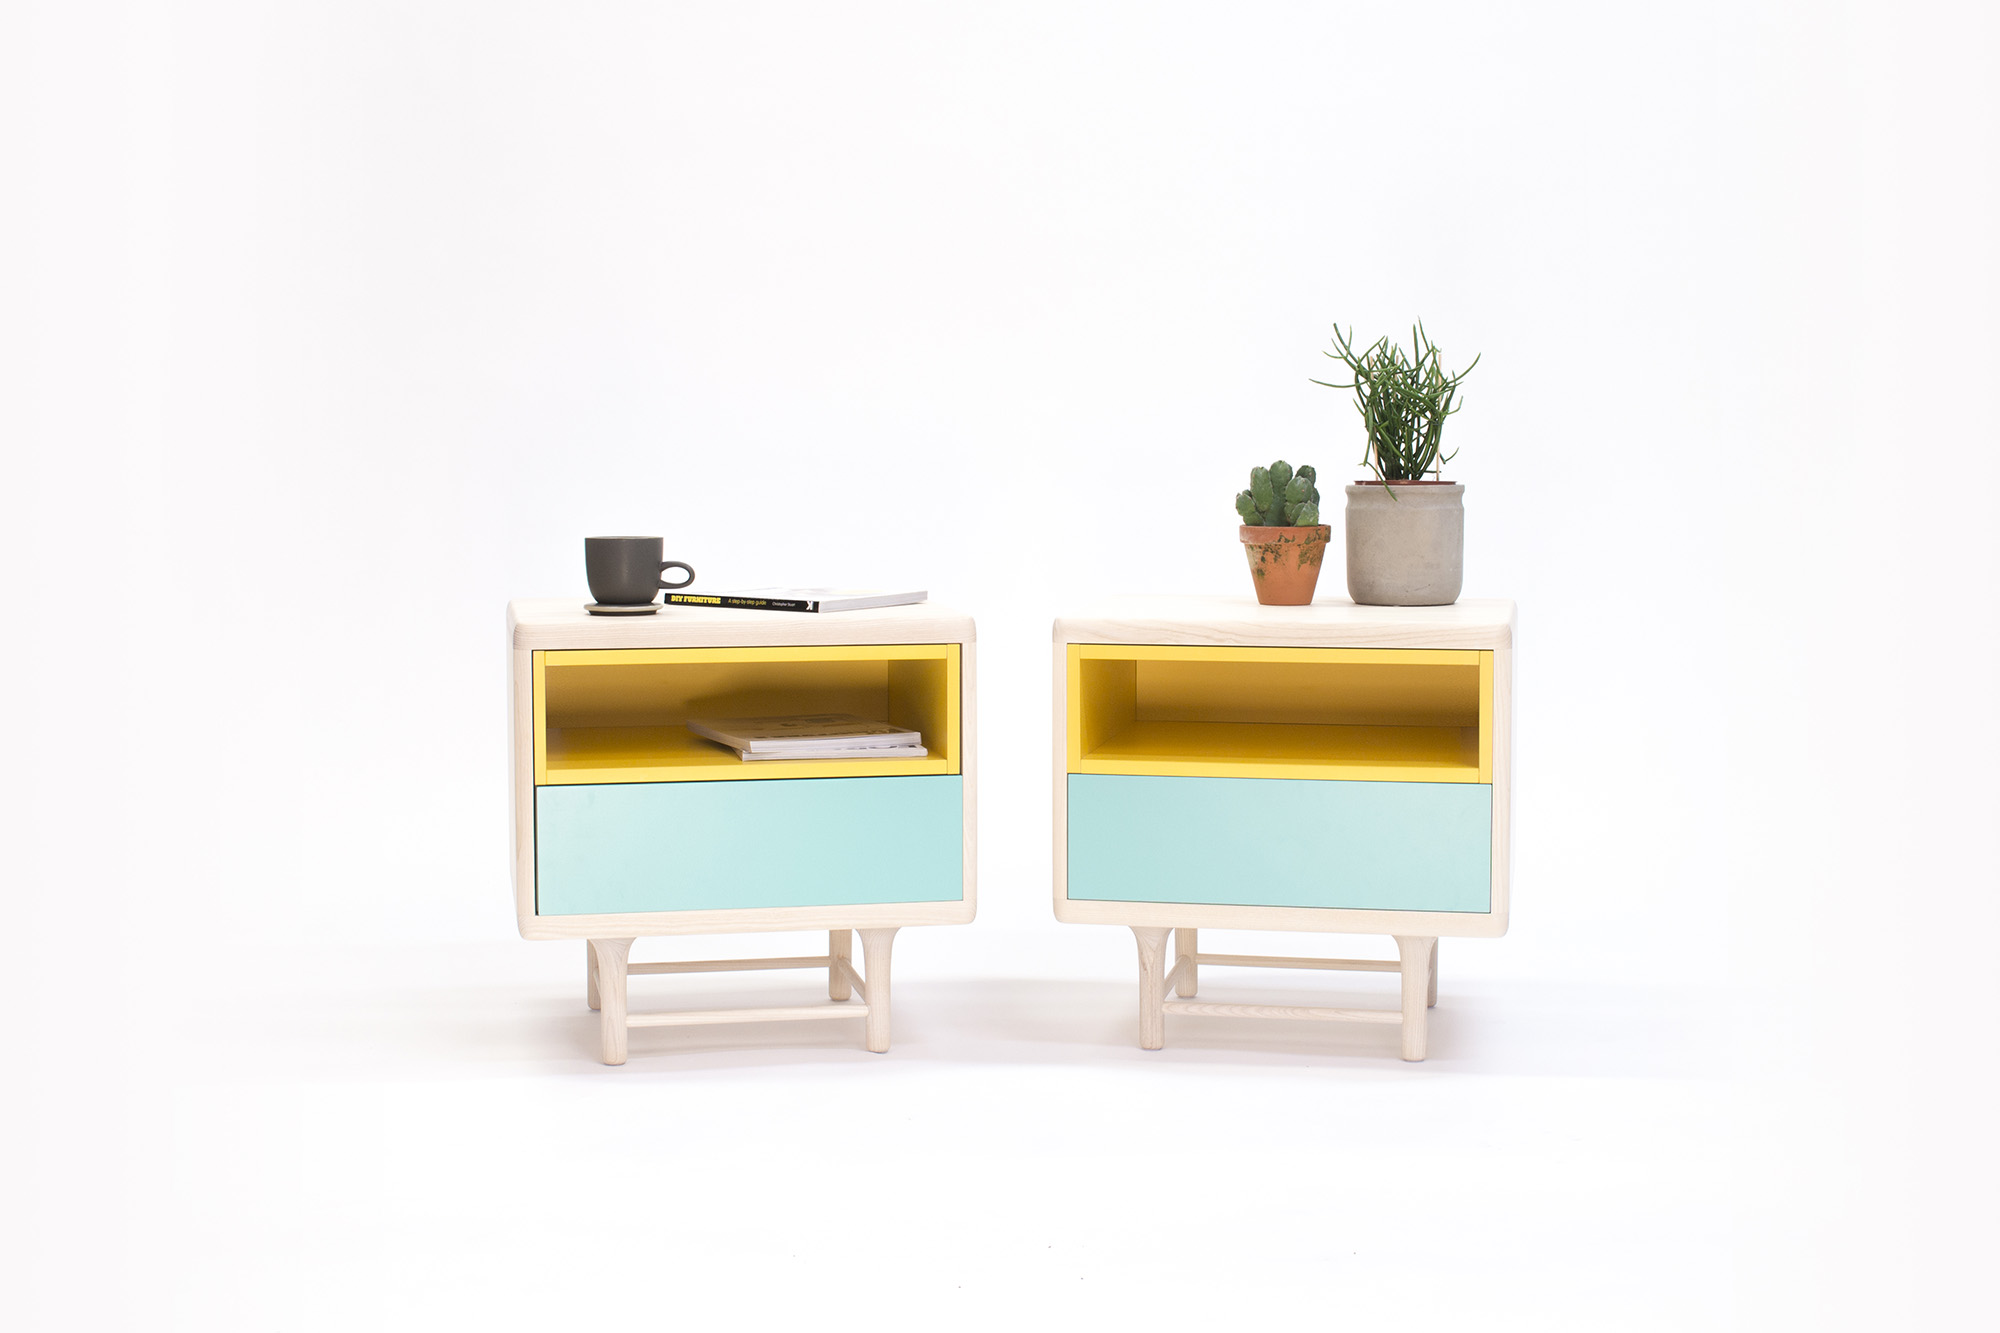 Minimal scandinavian furniture by designer carlos jim nez for Picture of furniture designs